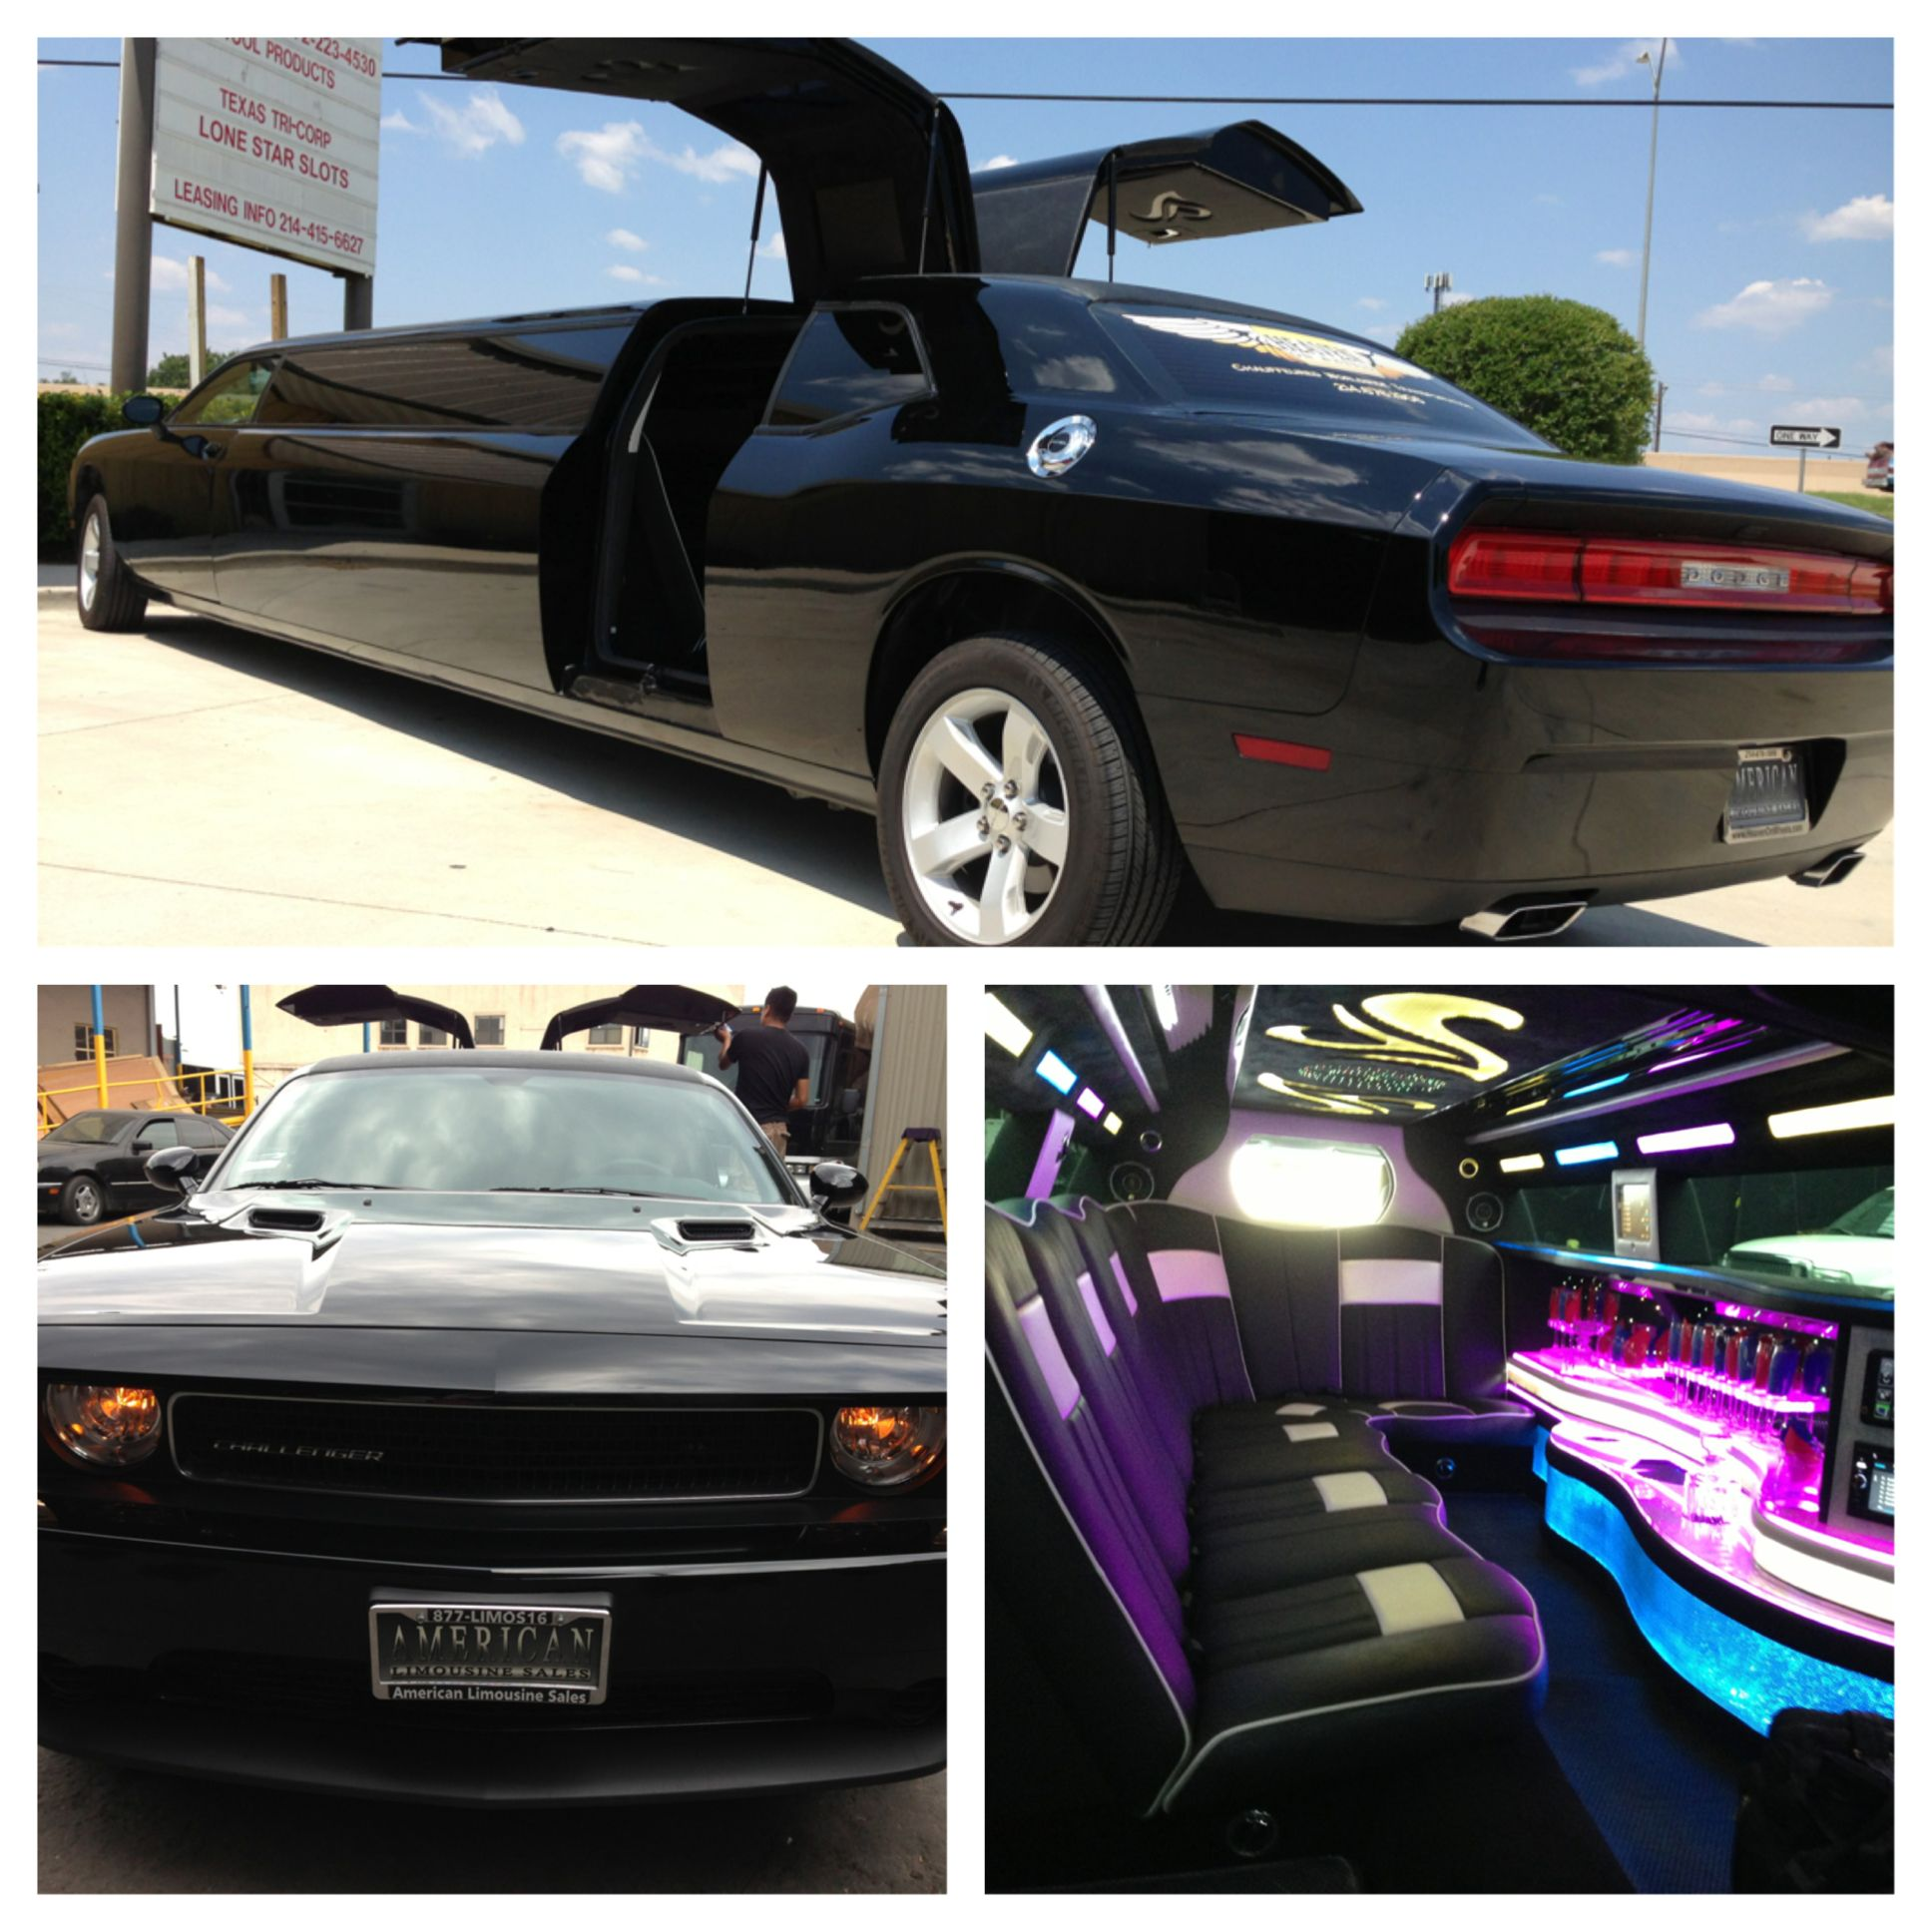 Dodge Challenger Limo Jet Doors and much more! & Dodge Challenger Limo Jet Doors and much more!! | Dodge ... Pezcame.Com